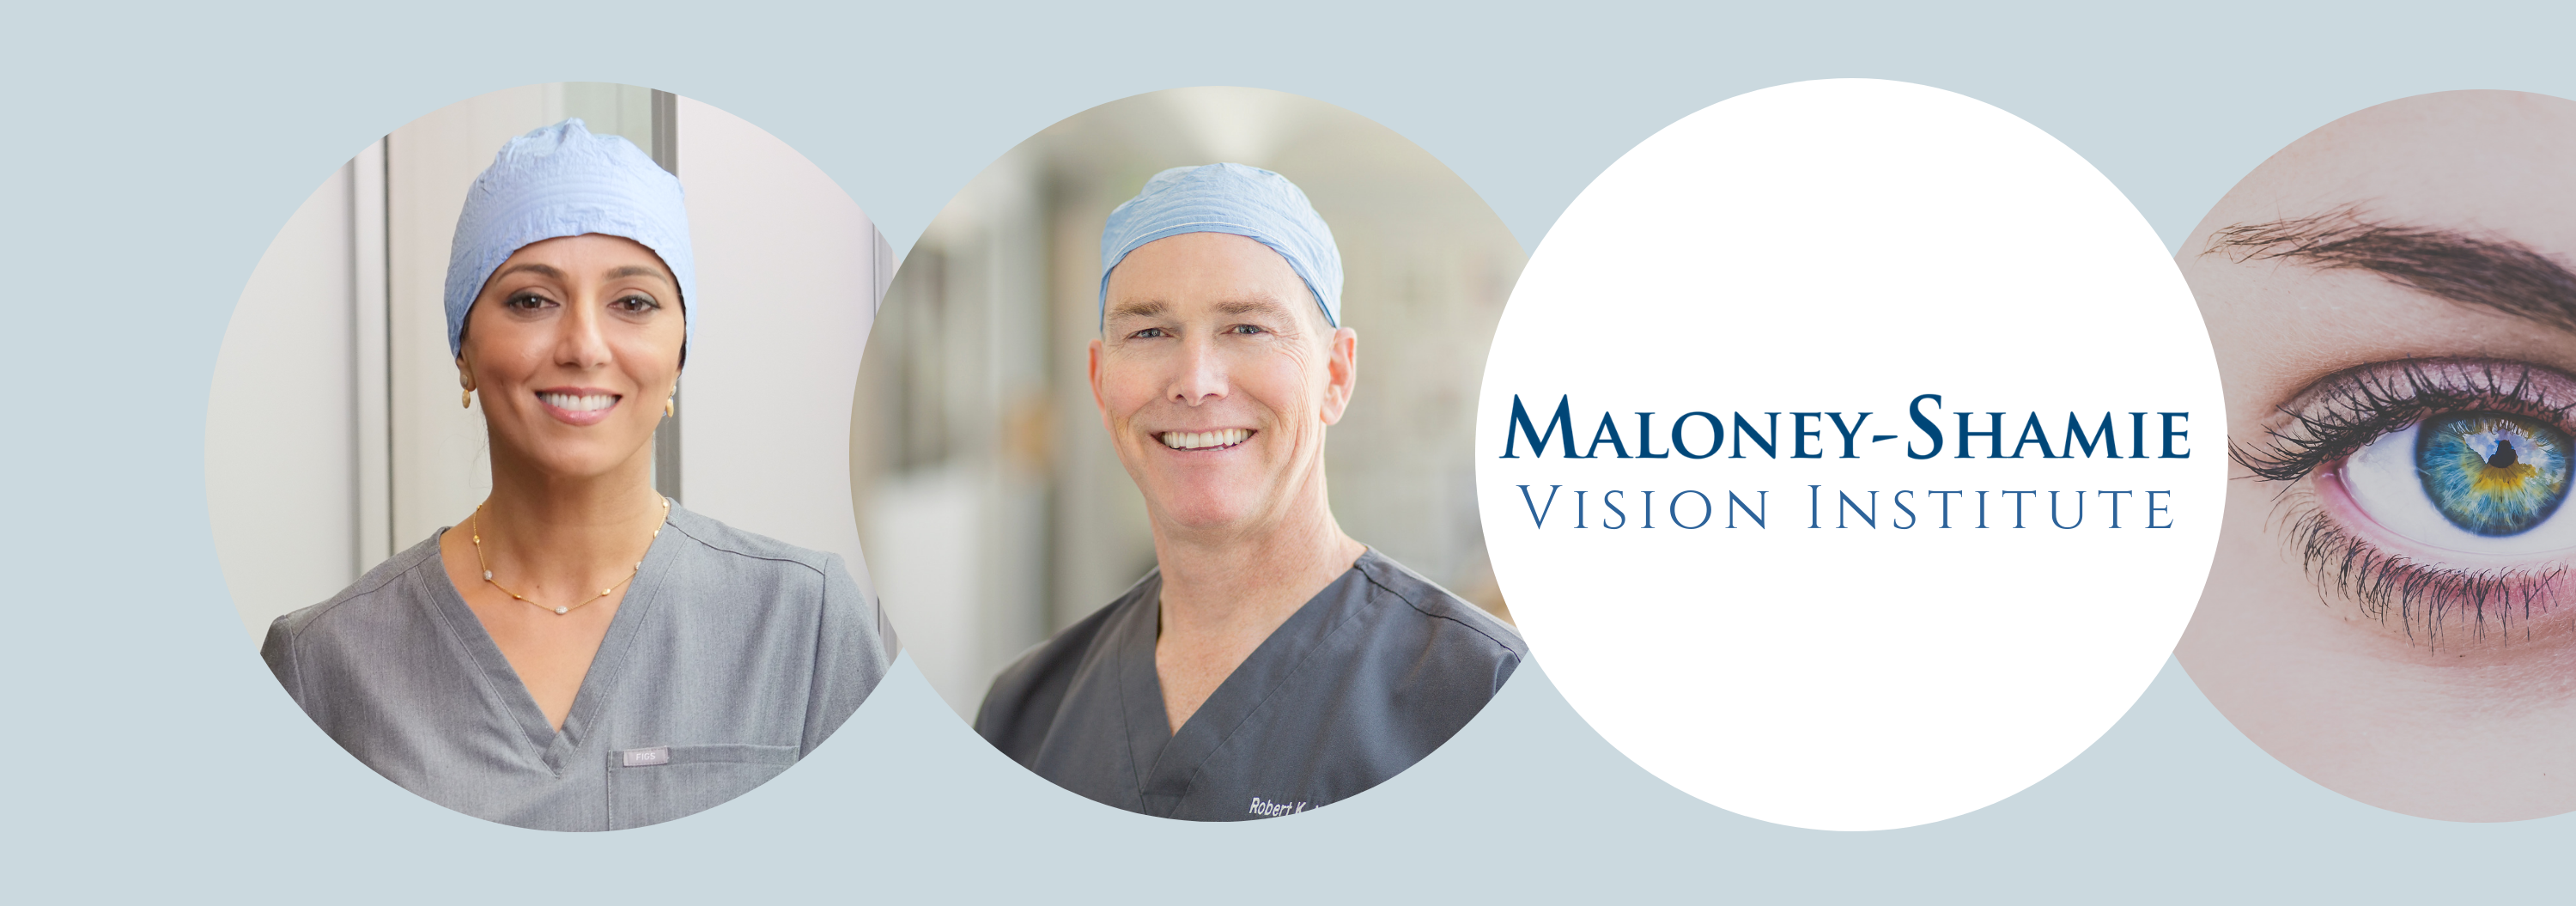 Maloney-Shamie Vision Institute reviews | 10921 Wilshire Blvd - Los Angeles CA